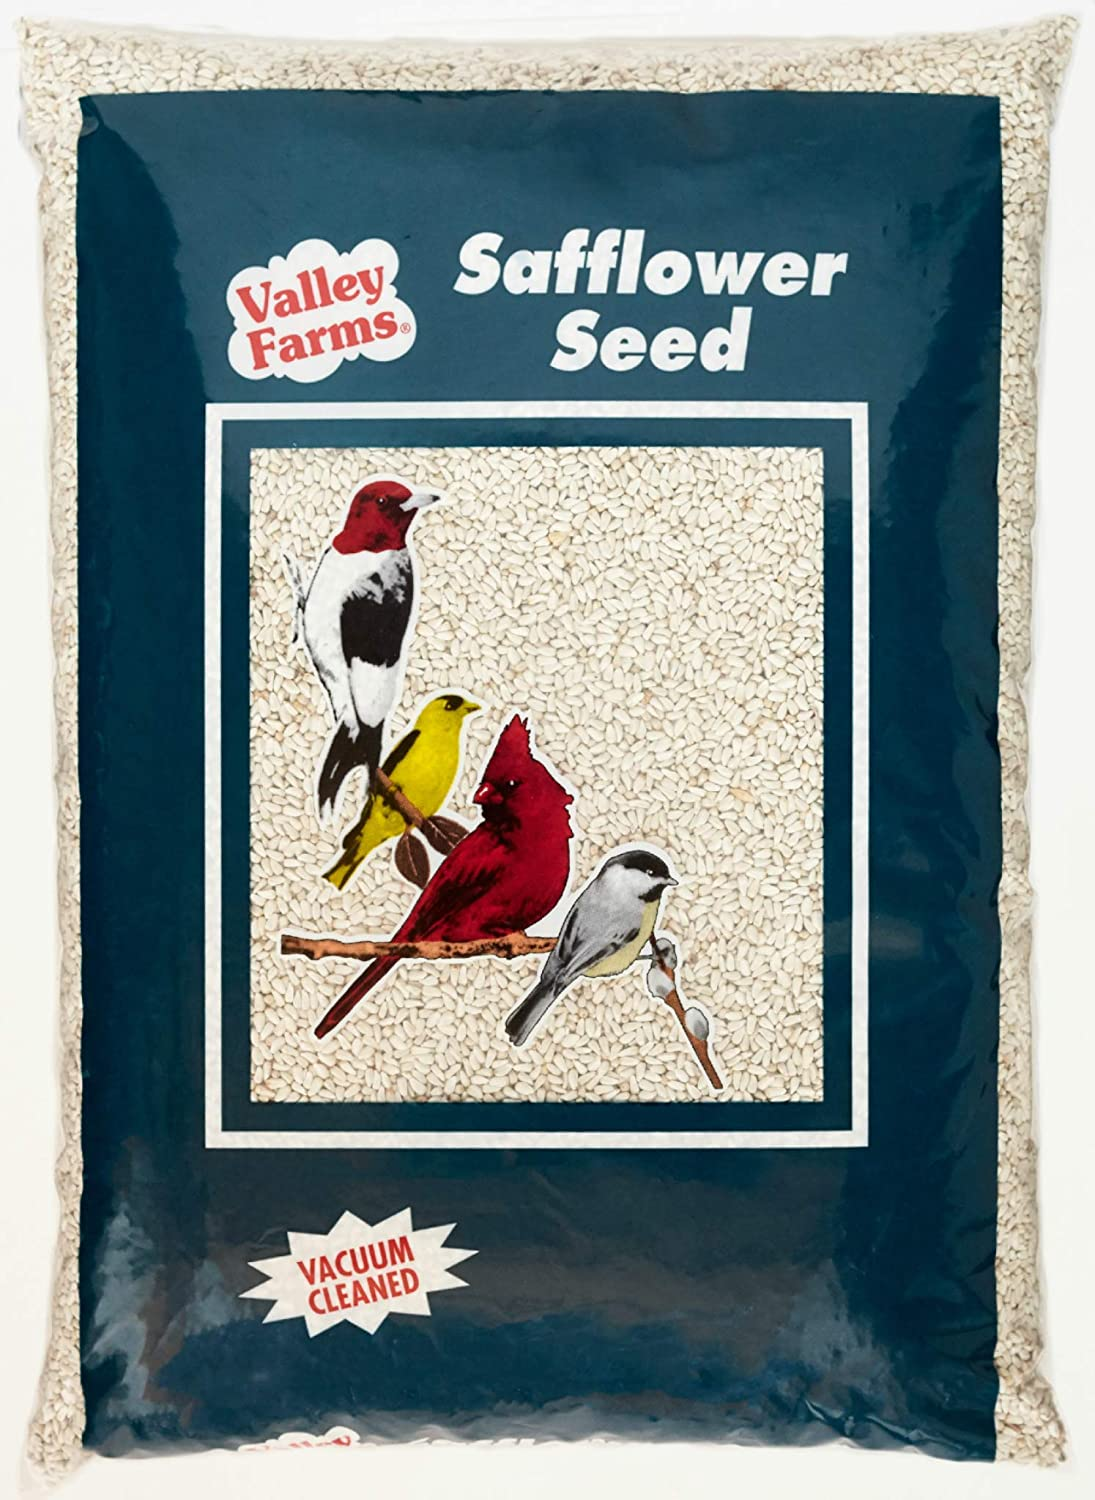 Valley Farms Safflower Seed Wild Bird Food - Attract Cardinals & Titmice! +Squirrels Do Not Like it (4 LBS)